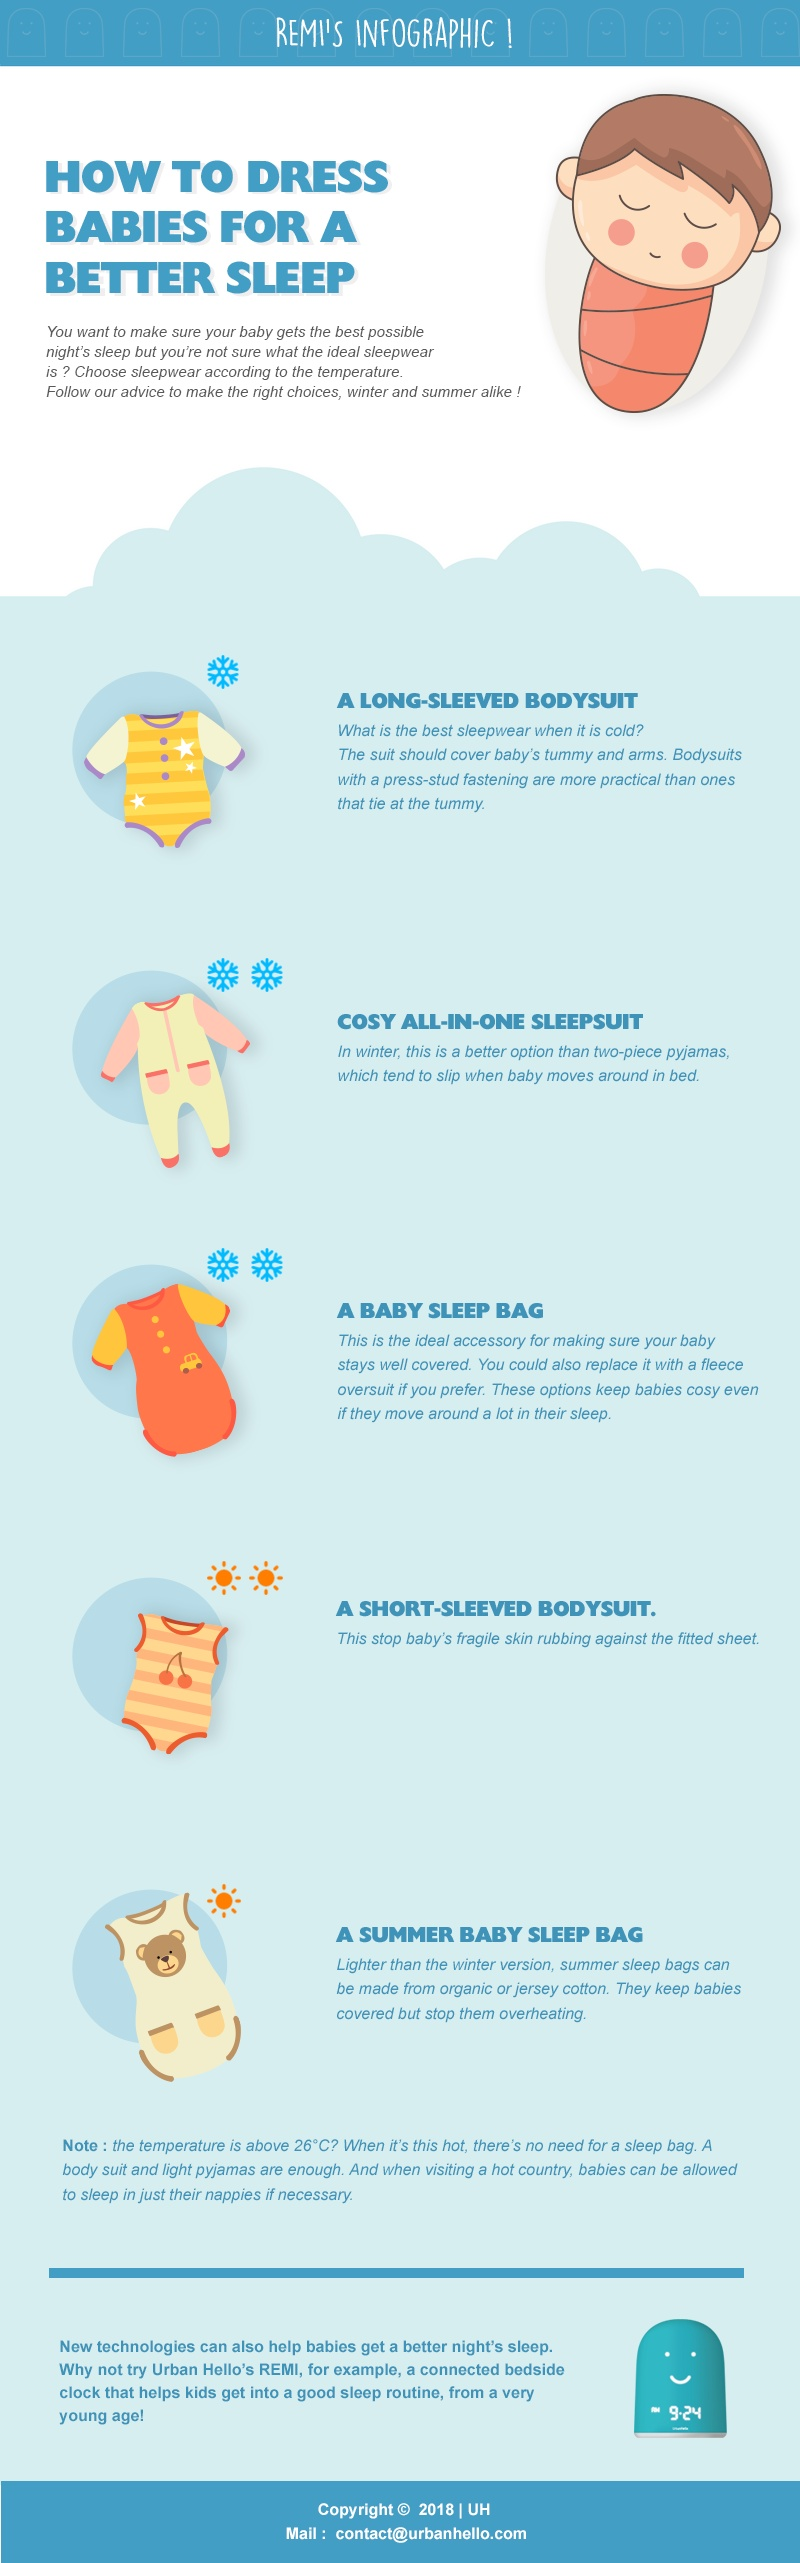 How to Dress Babies for a Better Sleep